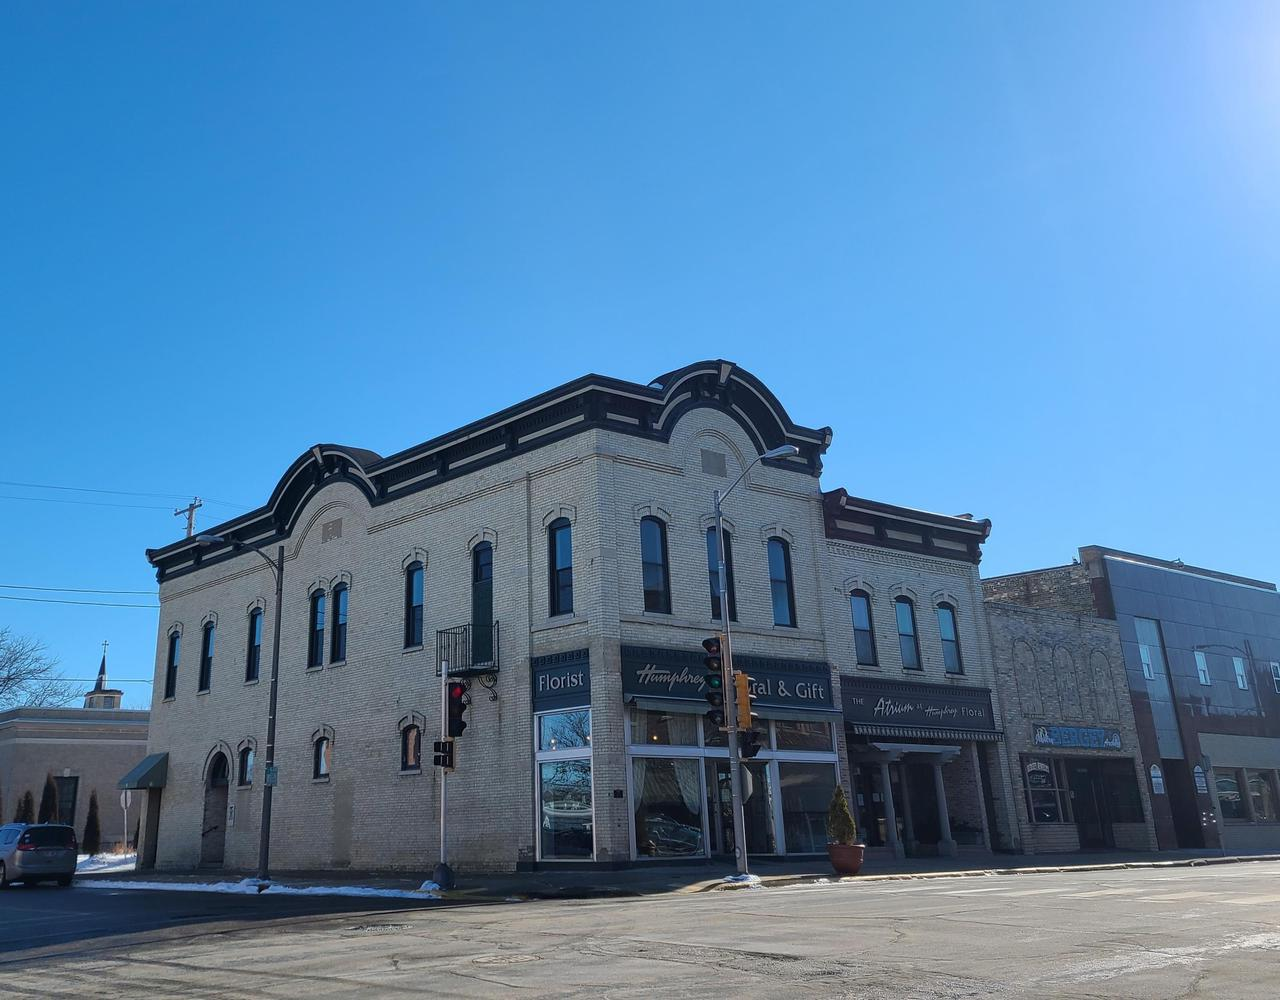 201 S Main St, Fort Atkinson, WI 53538